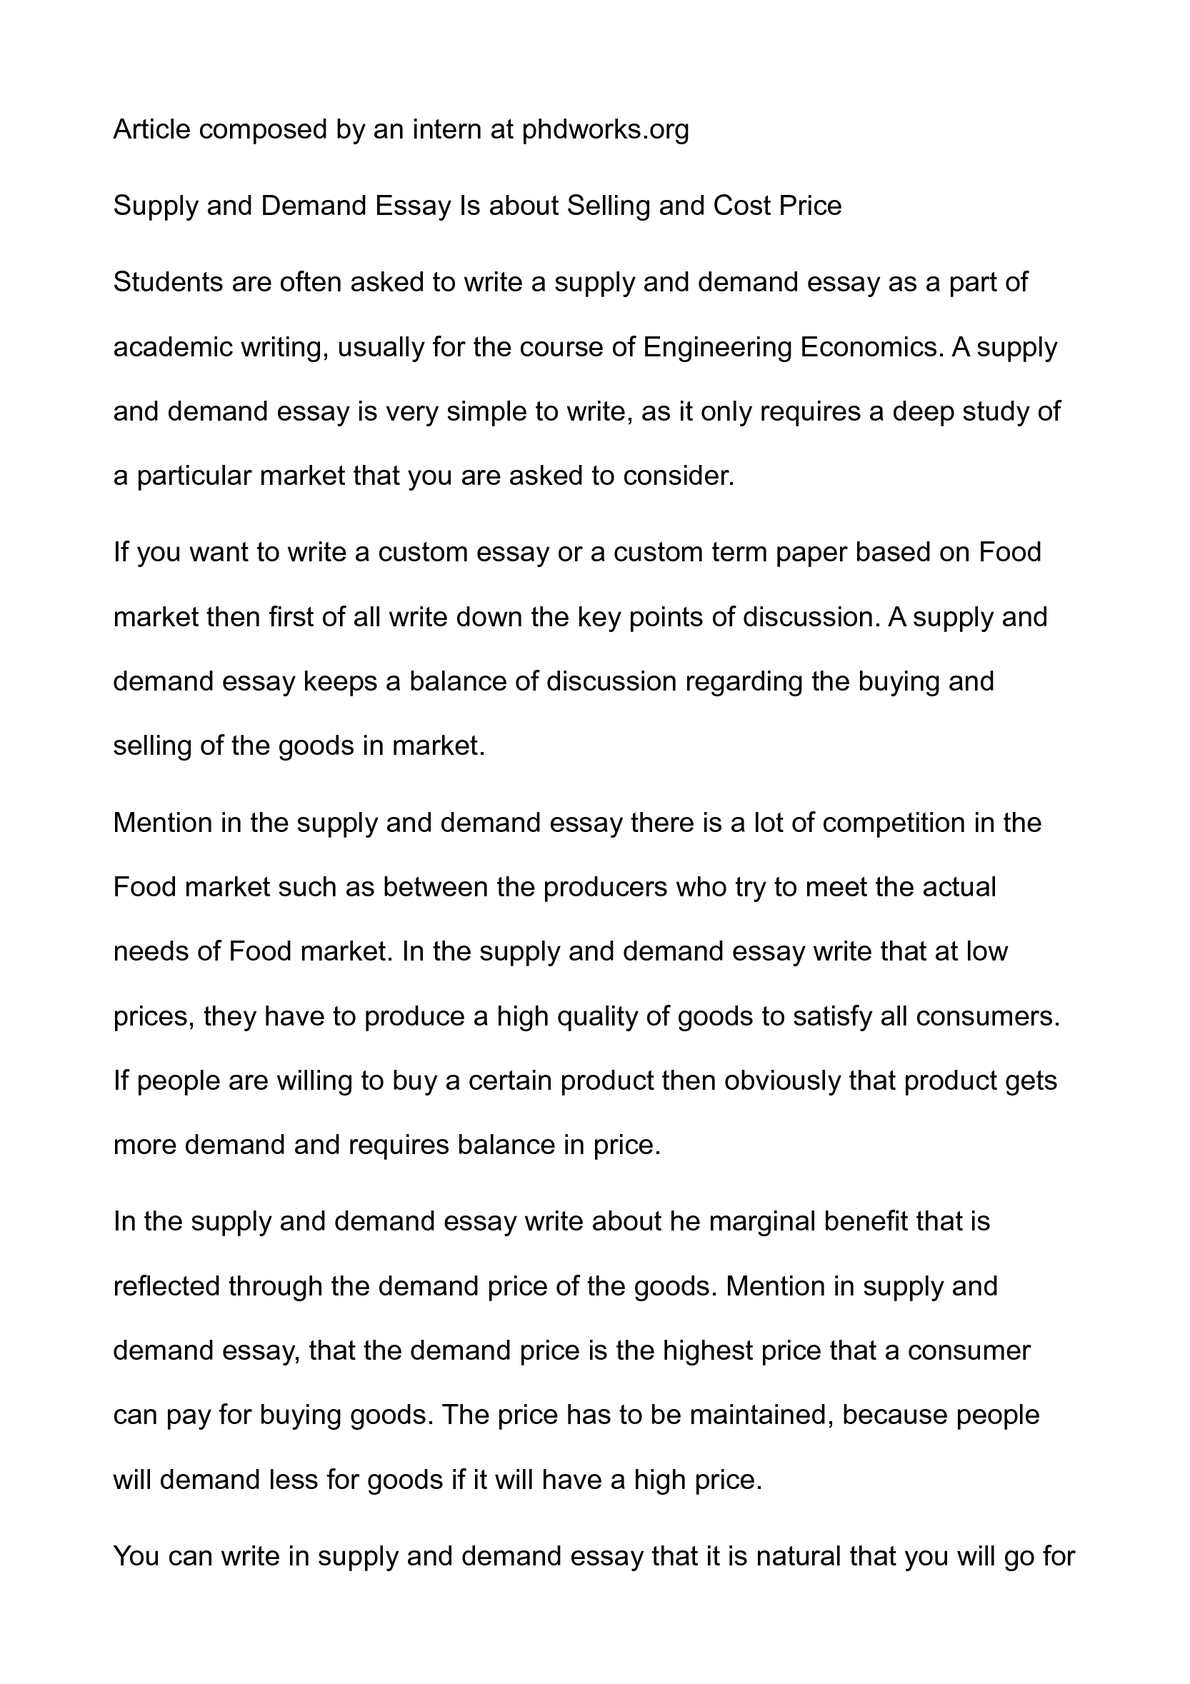 001 Essay Supply P1 Shocking Essaysupply Sign Up Sample On And Demand Chain Management Conclusion Full